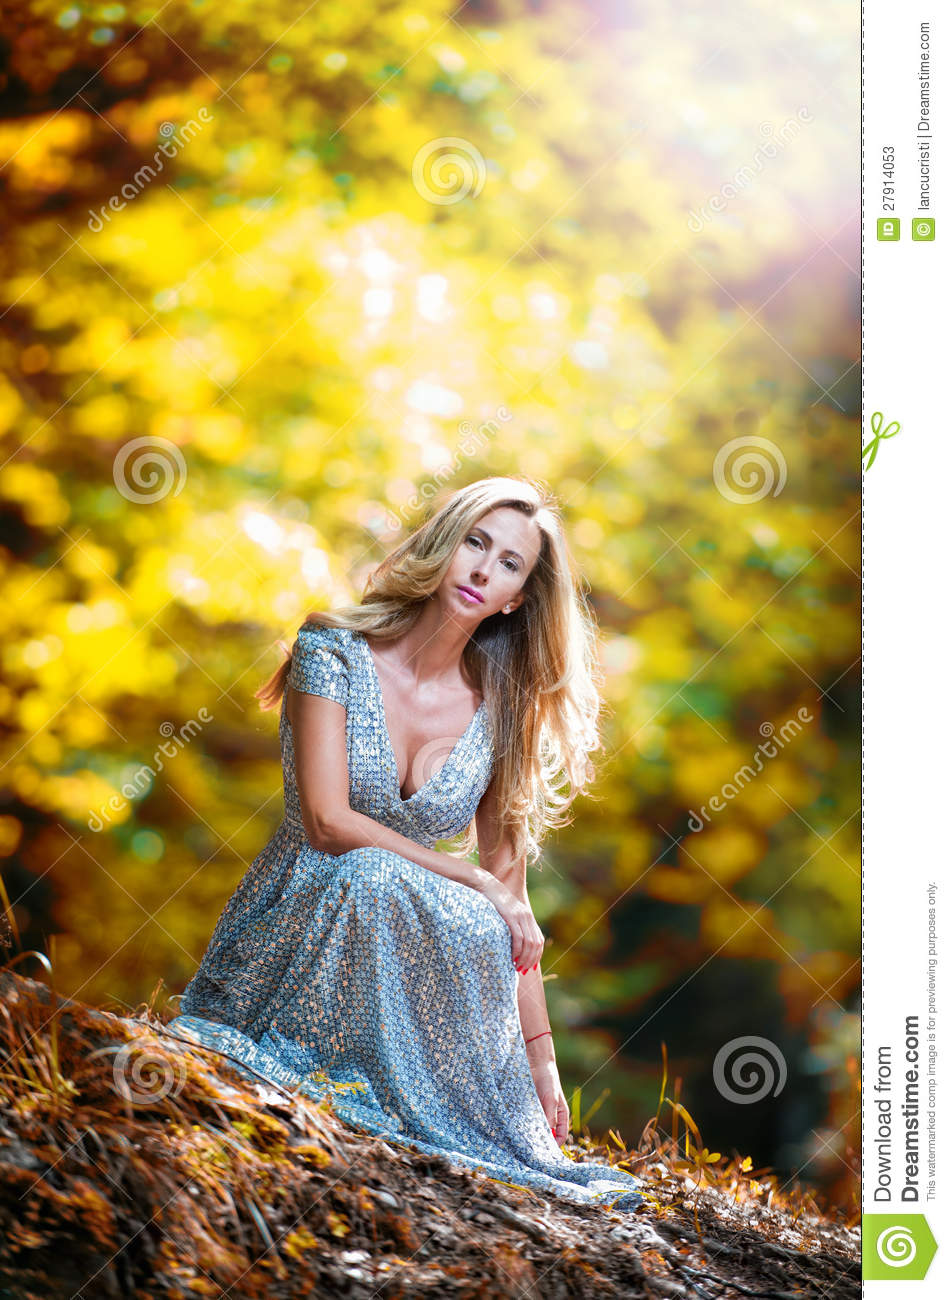 Pretty Girl Wallpapers Hd Pretty Blonde Fairy Lady With White Dress Stock Image